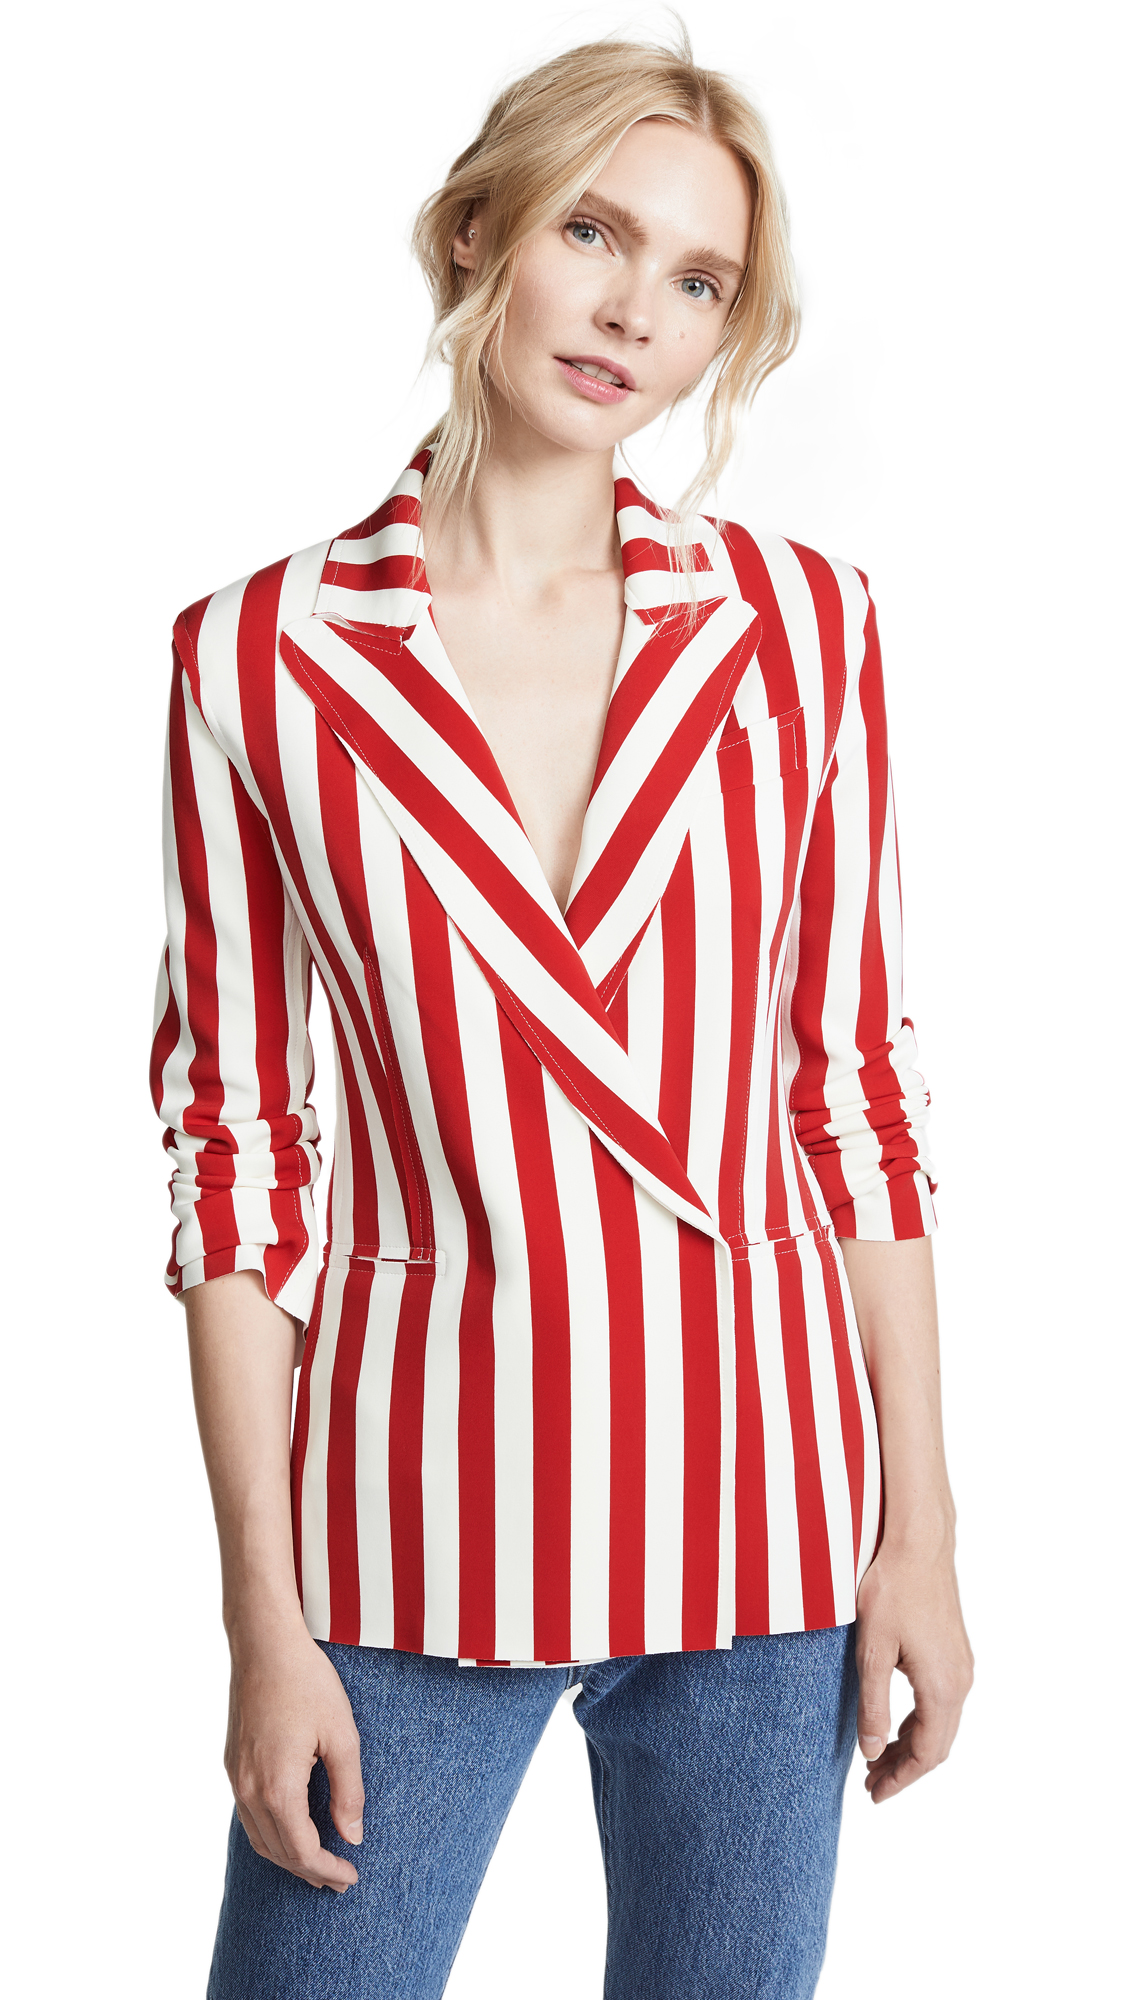 Norma Kamali Double Breasted Jacket In Tango 3/4 Stripe